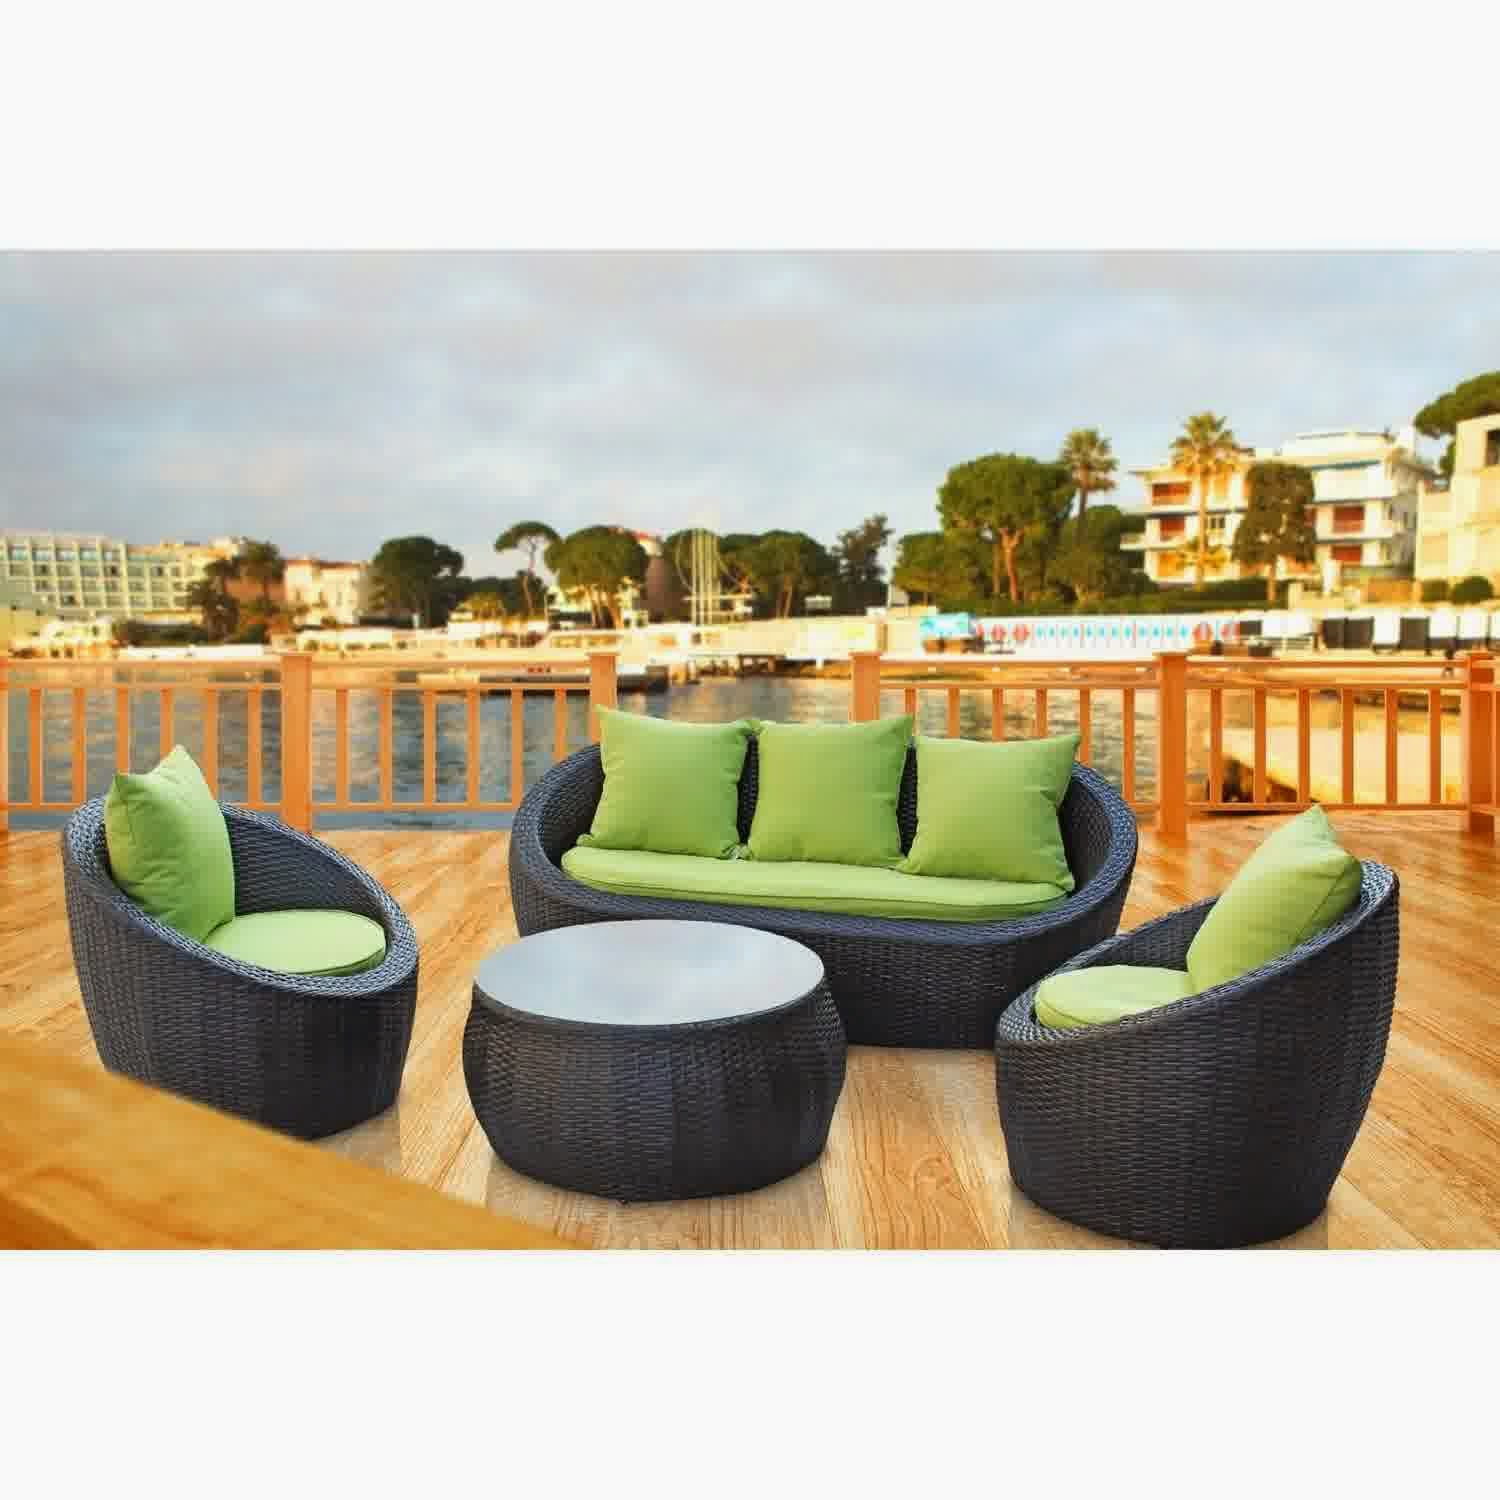 lexmod monterey outdoor wicker rattan sectional sofa set small traditional sofas discount 51 for avo patio 4 piece